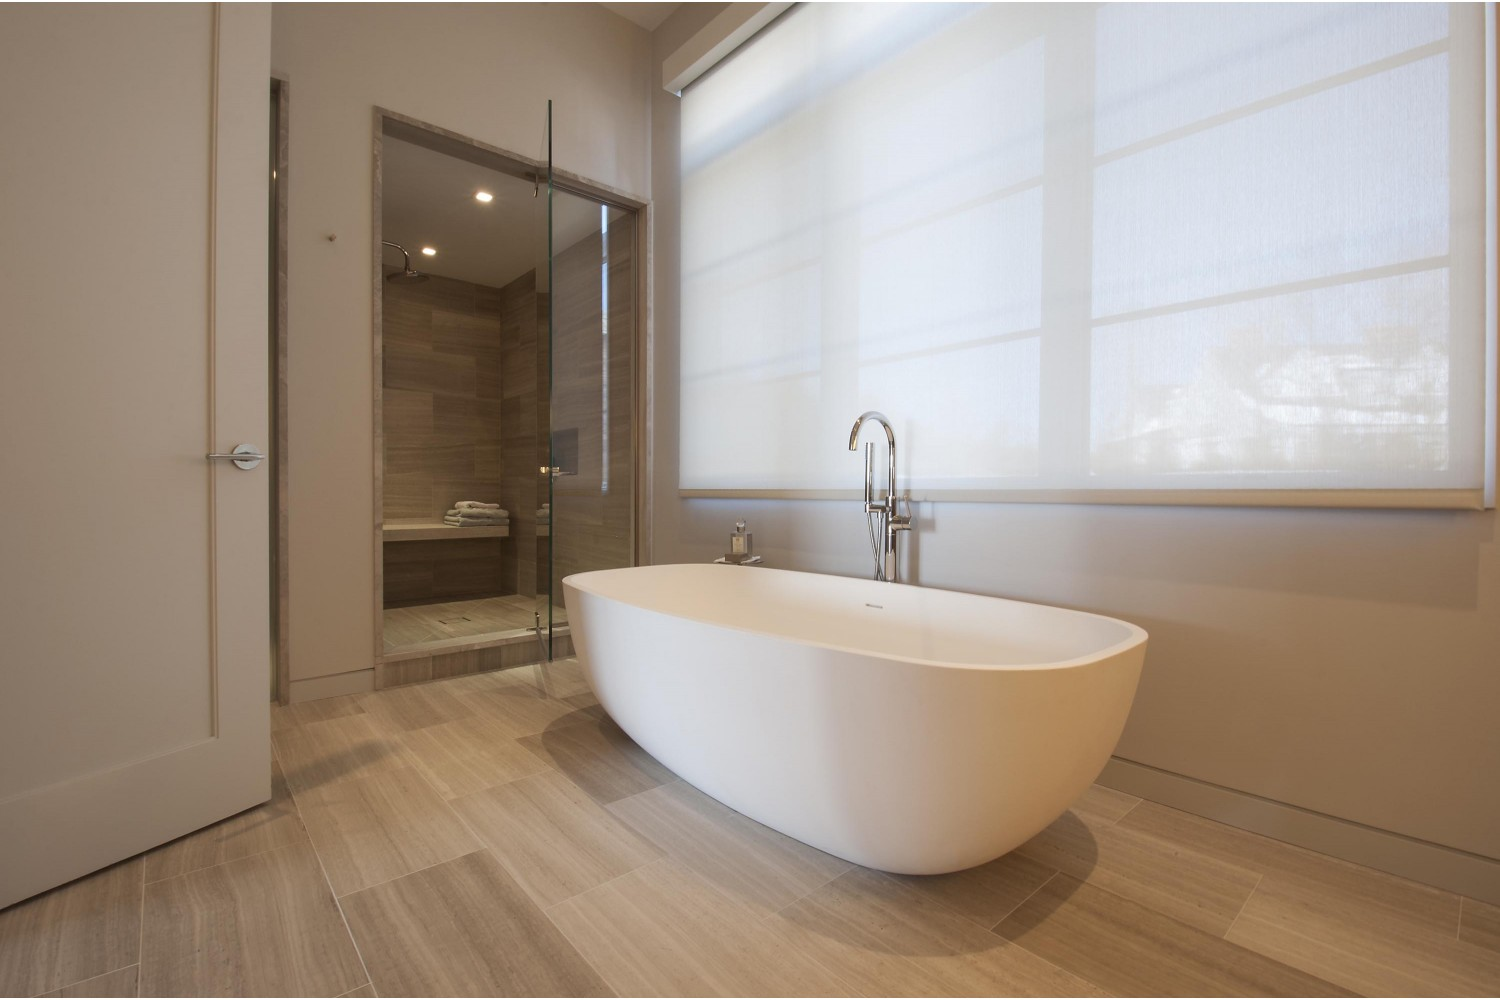 <span>1st floor master bathroom</span><span  class='incontracts'>IN CONTRACT </span>